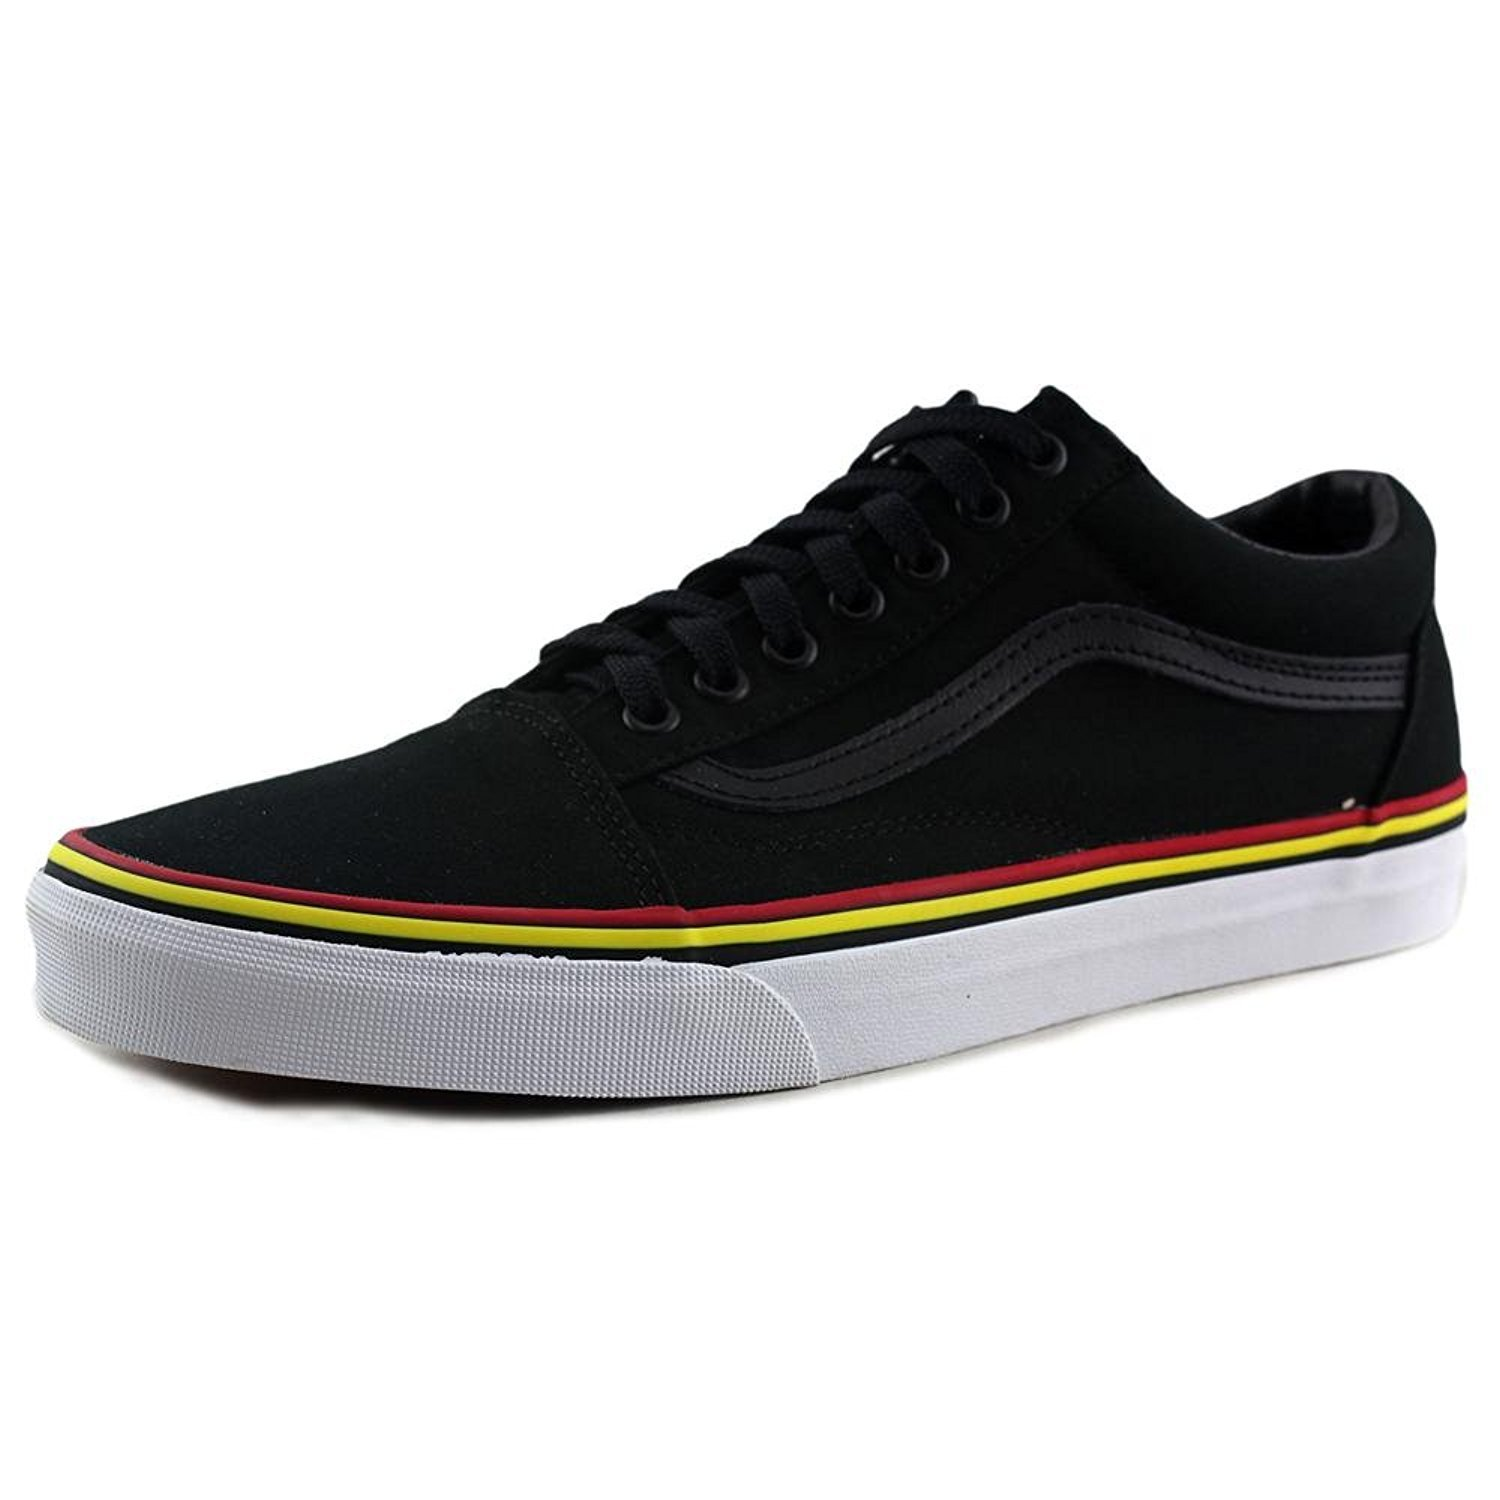 Vans Unisex Old Skool Classic Skate Shoes B01BHC6BMU 6 Men/ 7.5 Women|Black/ Red/ Yellow